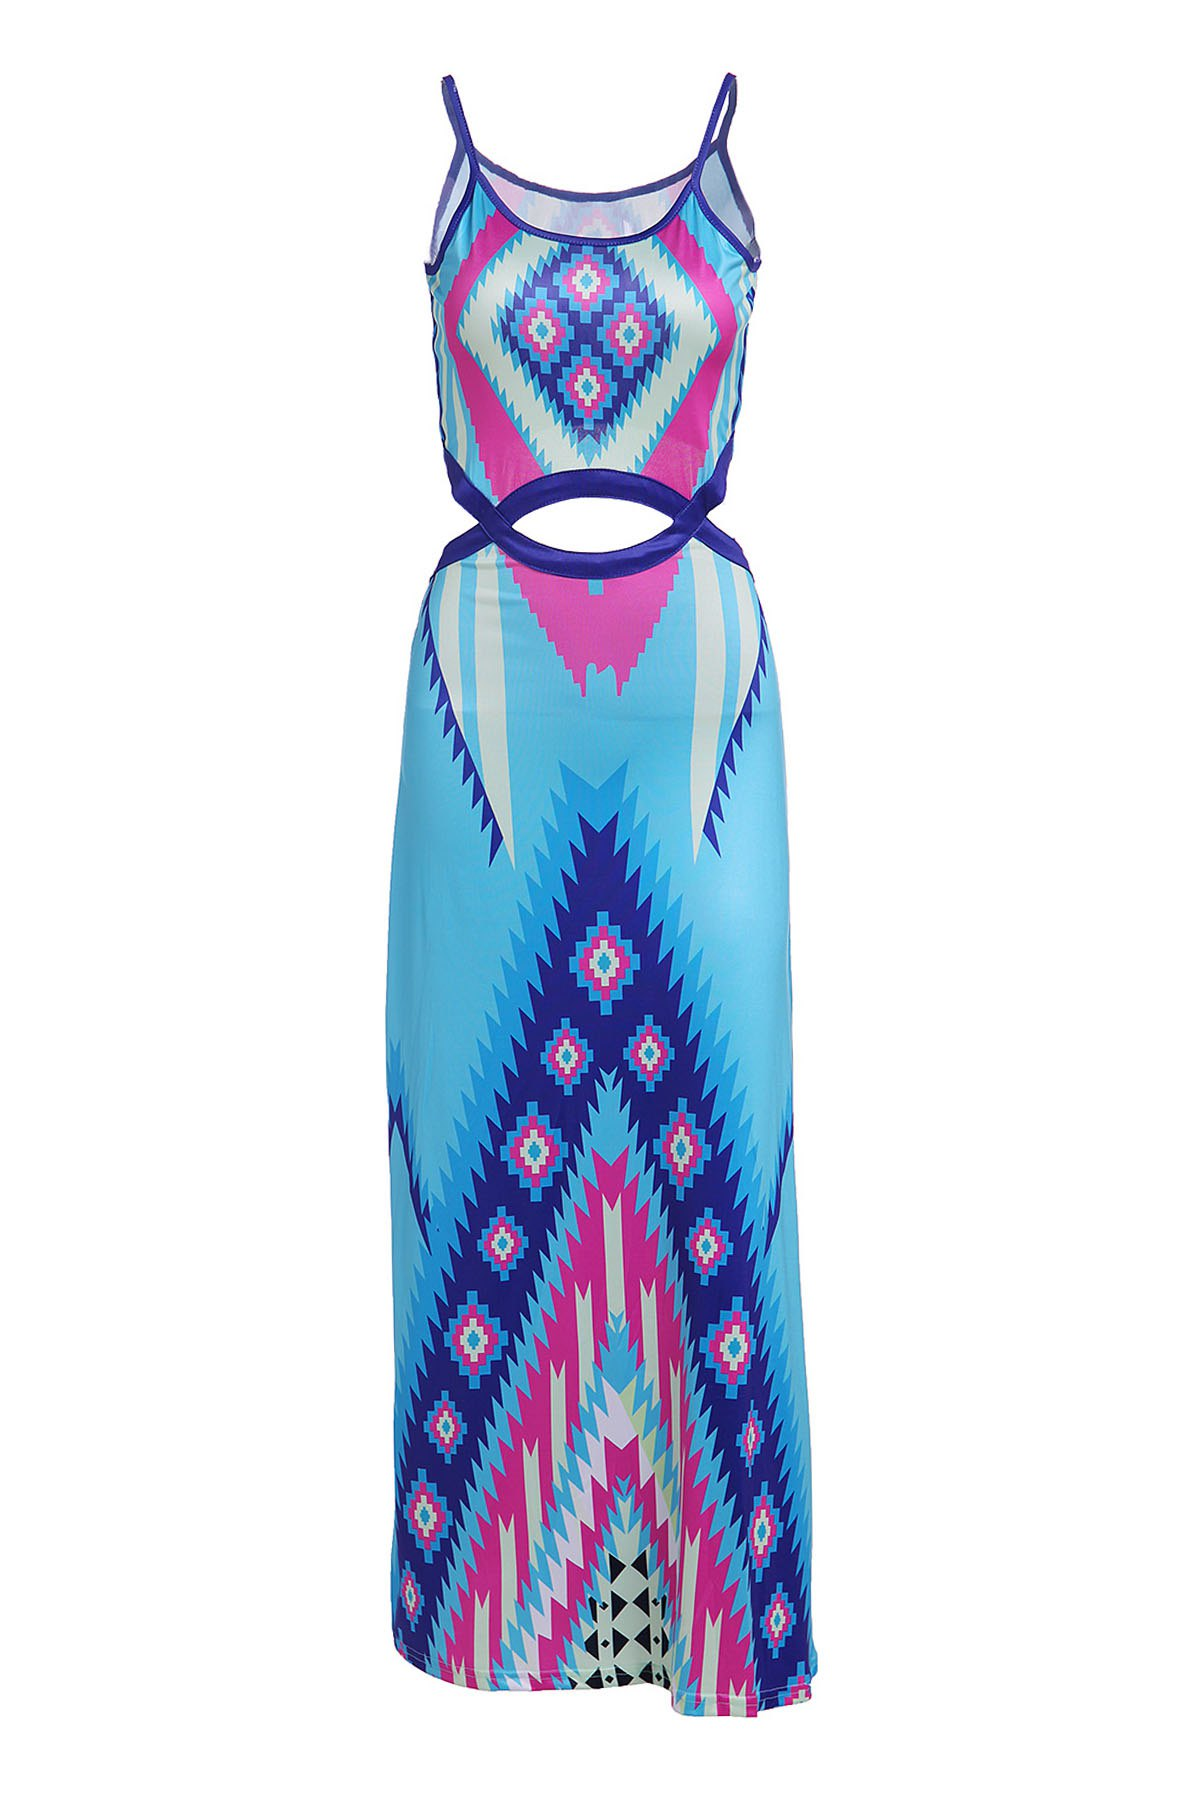 Charming Spaghetti Strap Colorful Printed Waist Cut Out Dress For WomenWomen<br><br><br>Size: L<br>Color: LAKE BLUE